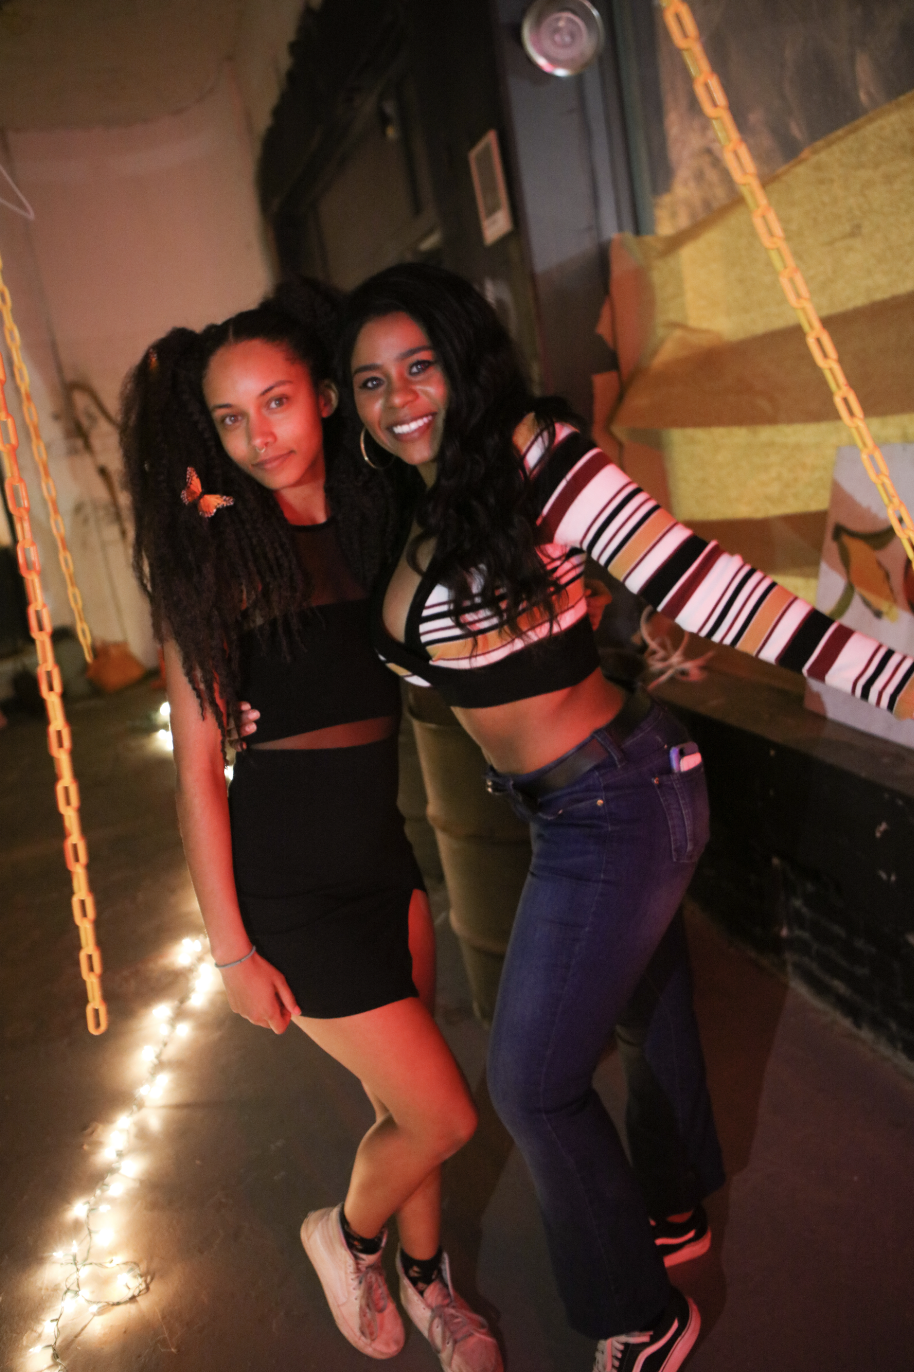 Maliyeah Grant (left) at WVAU's prom in April 2018. Photos by Jason Brandon